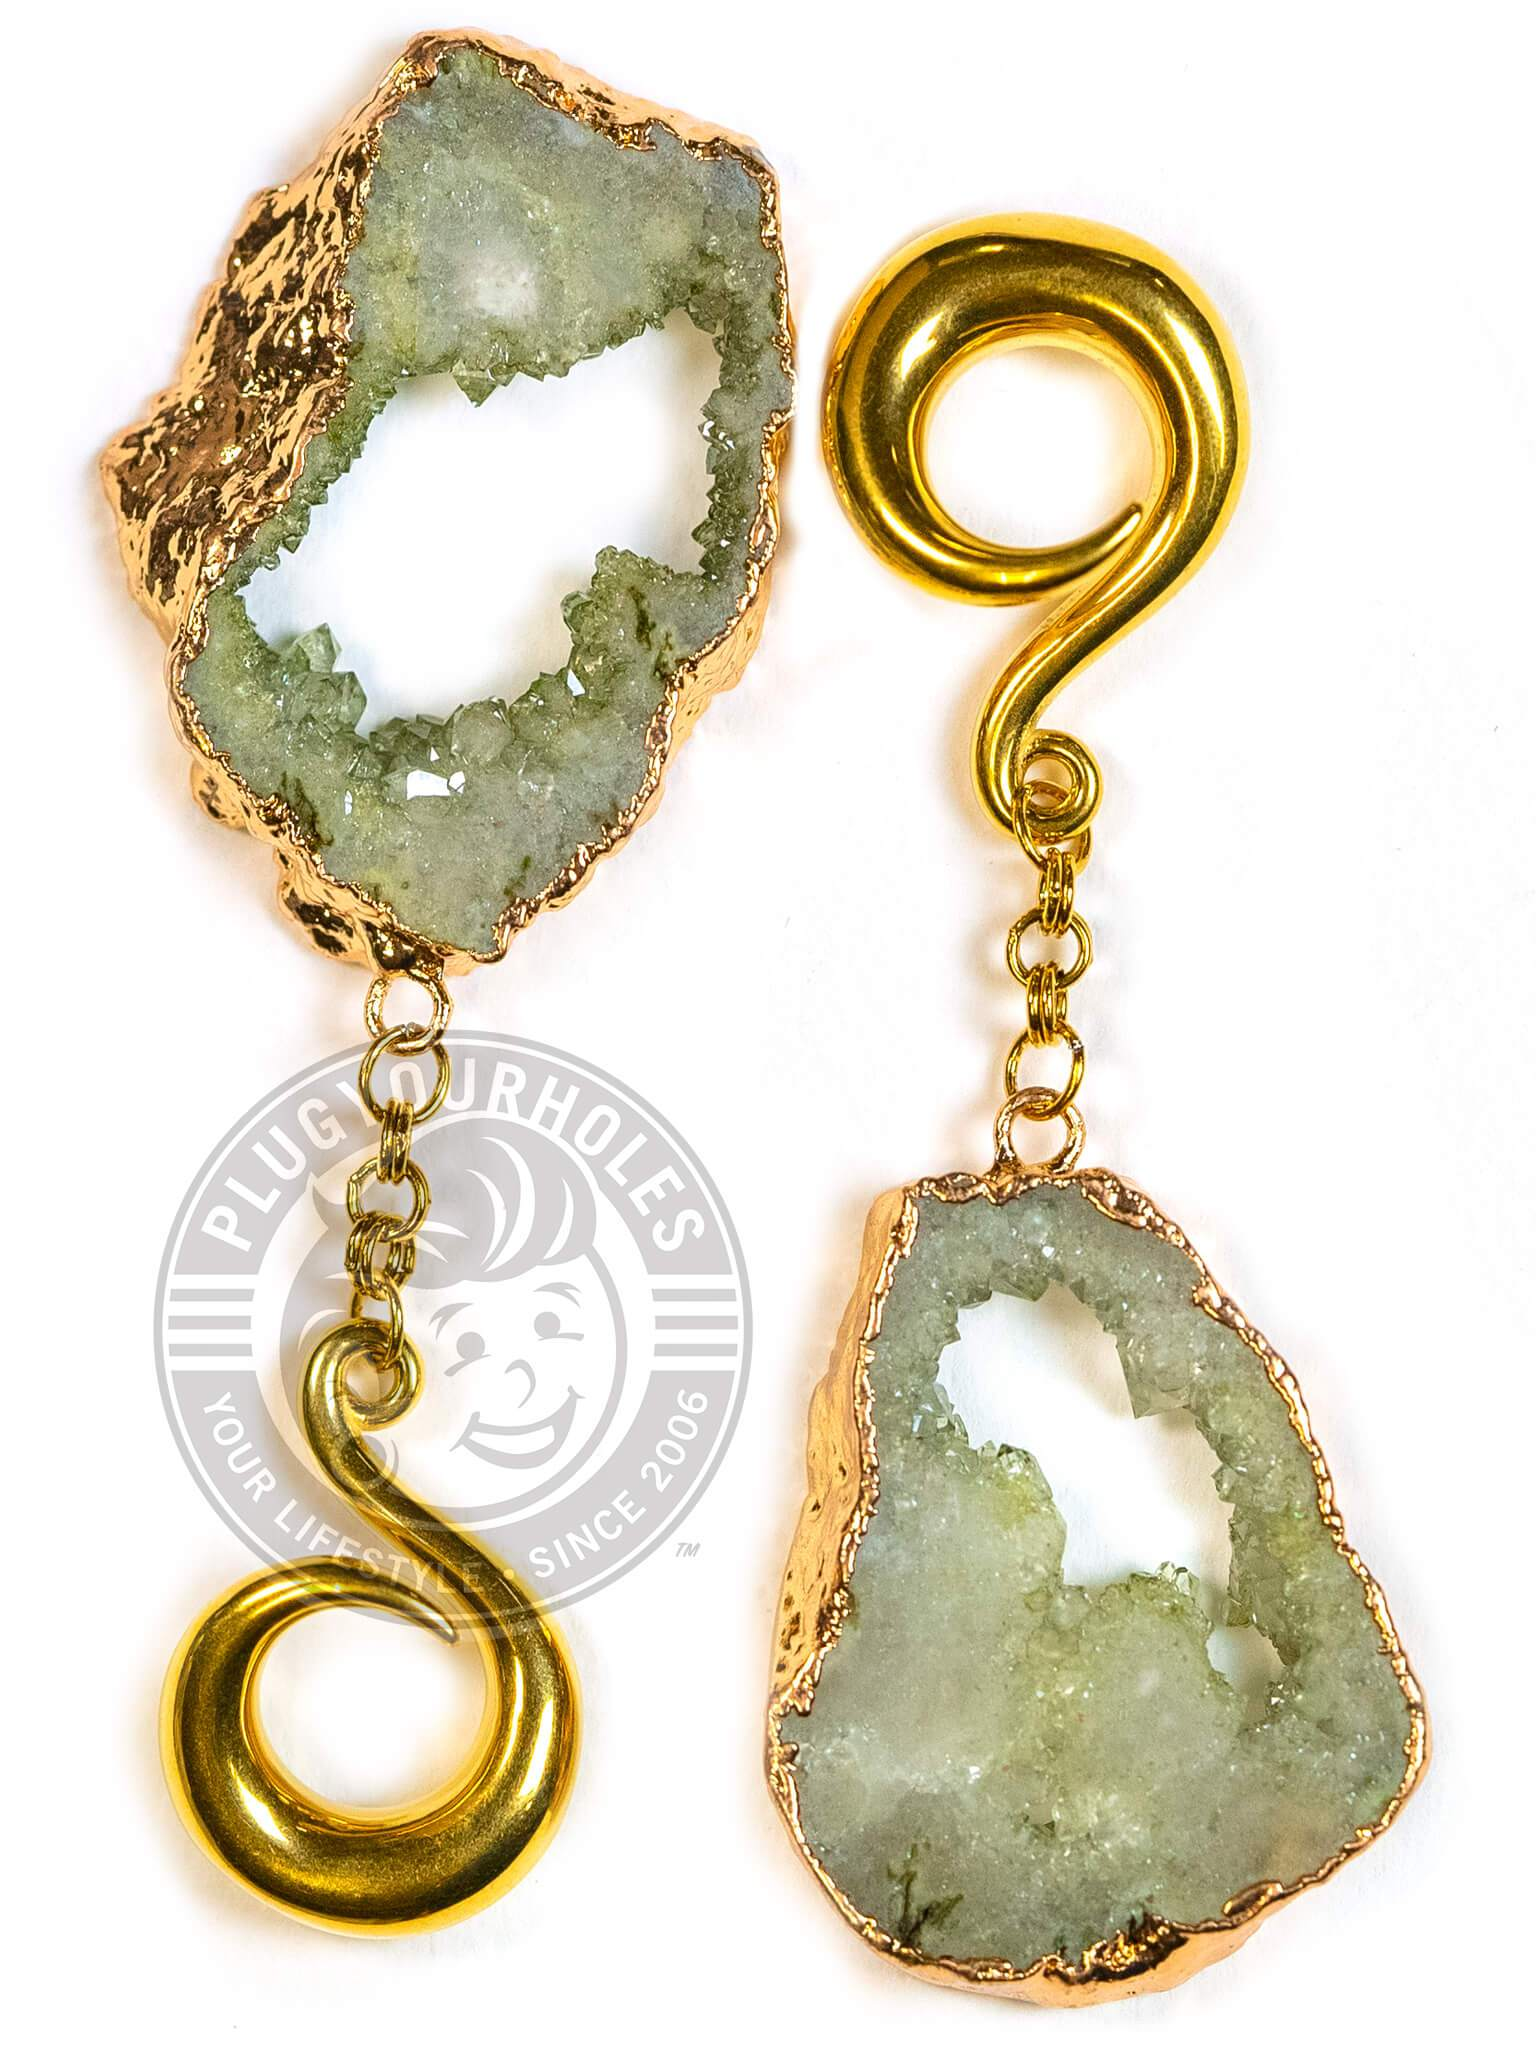 Moss Green Crystalized Geode Slice Gold Curled Hook Hangers